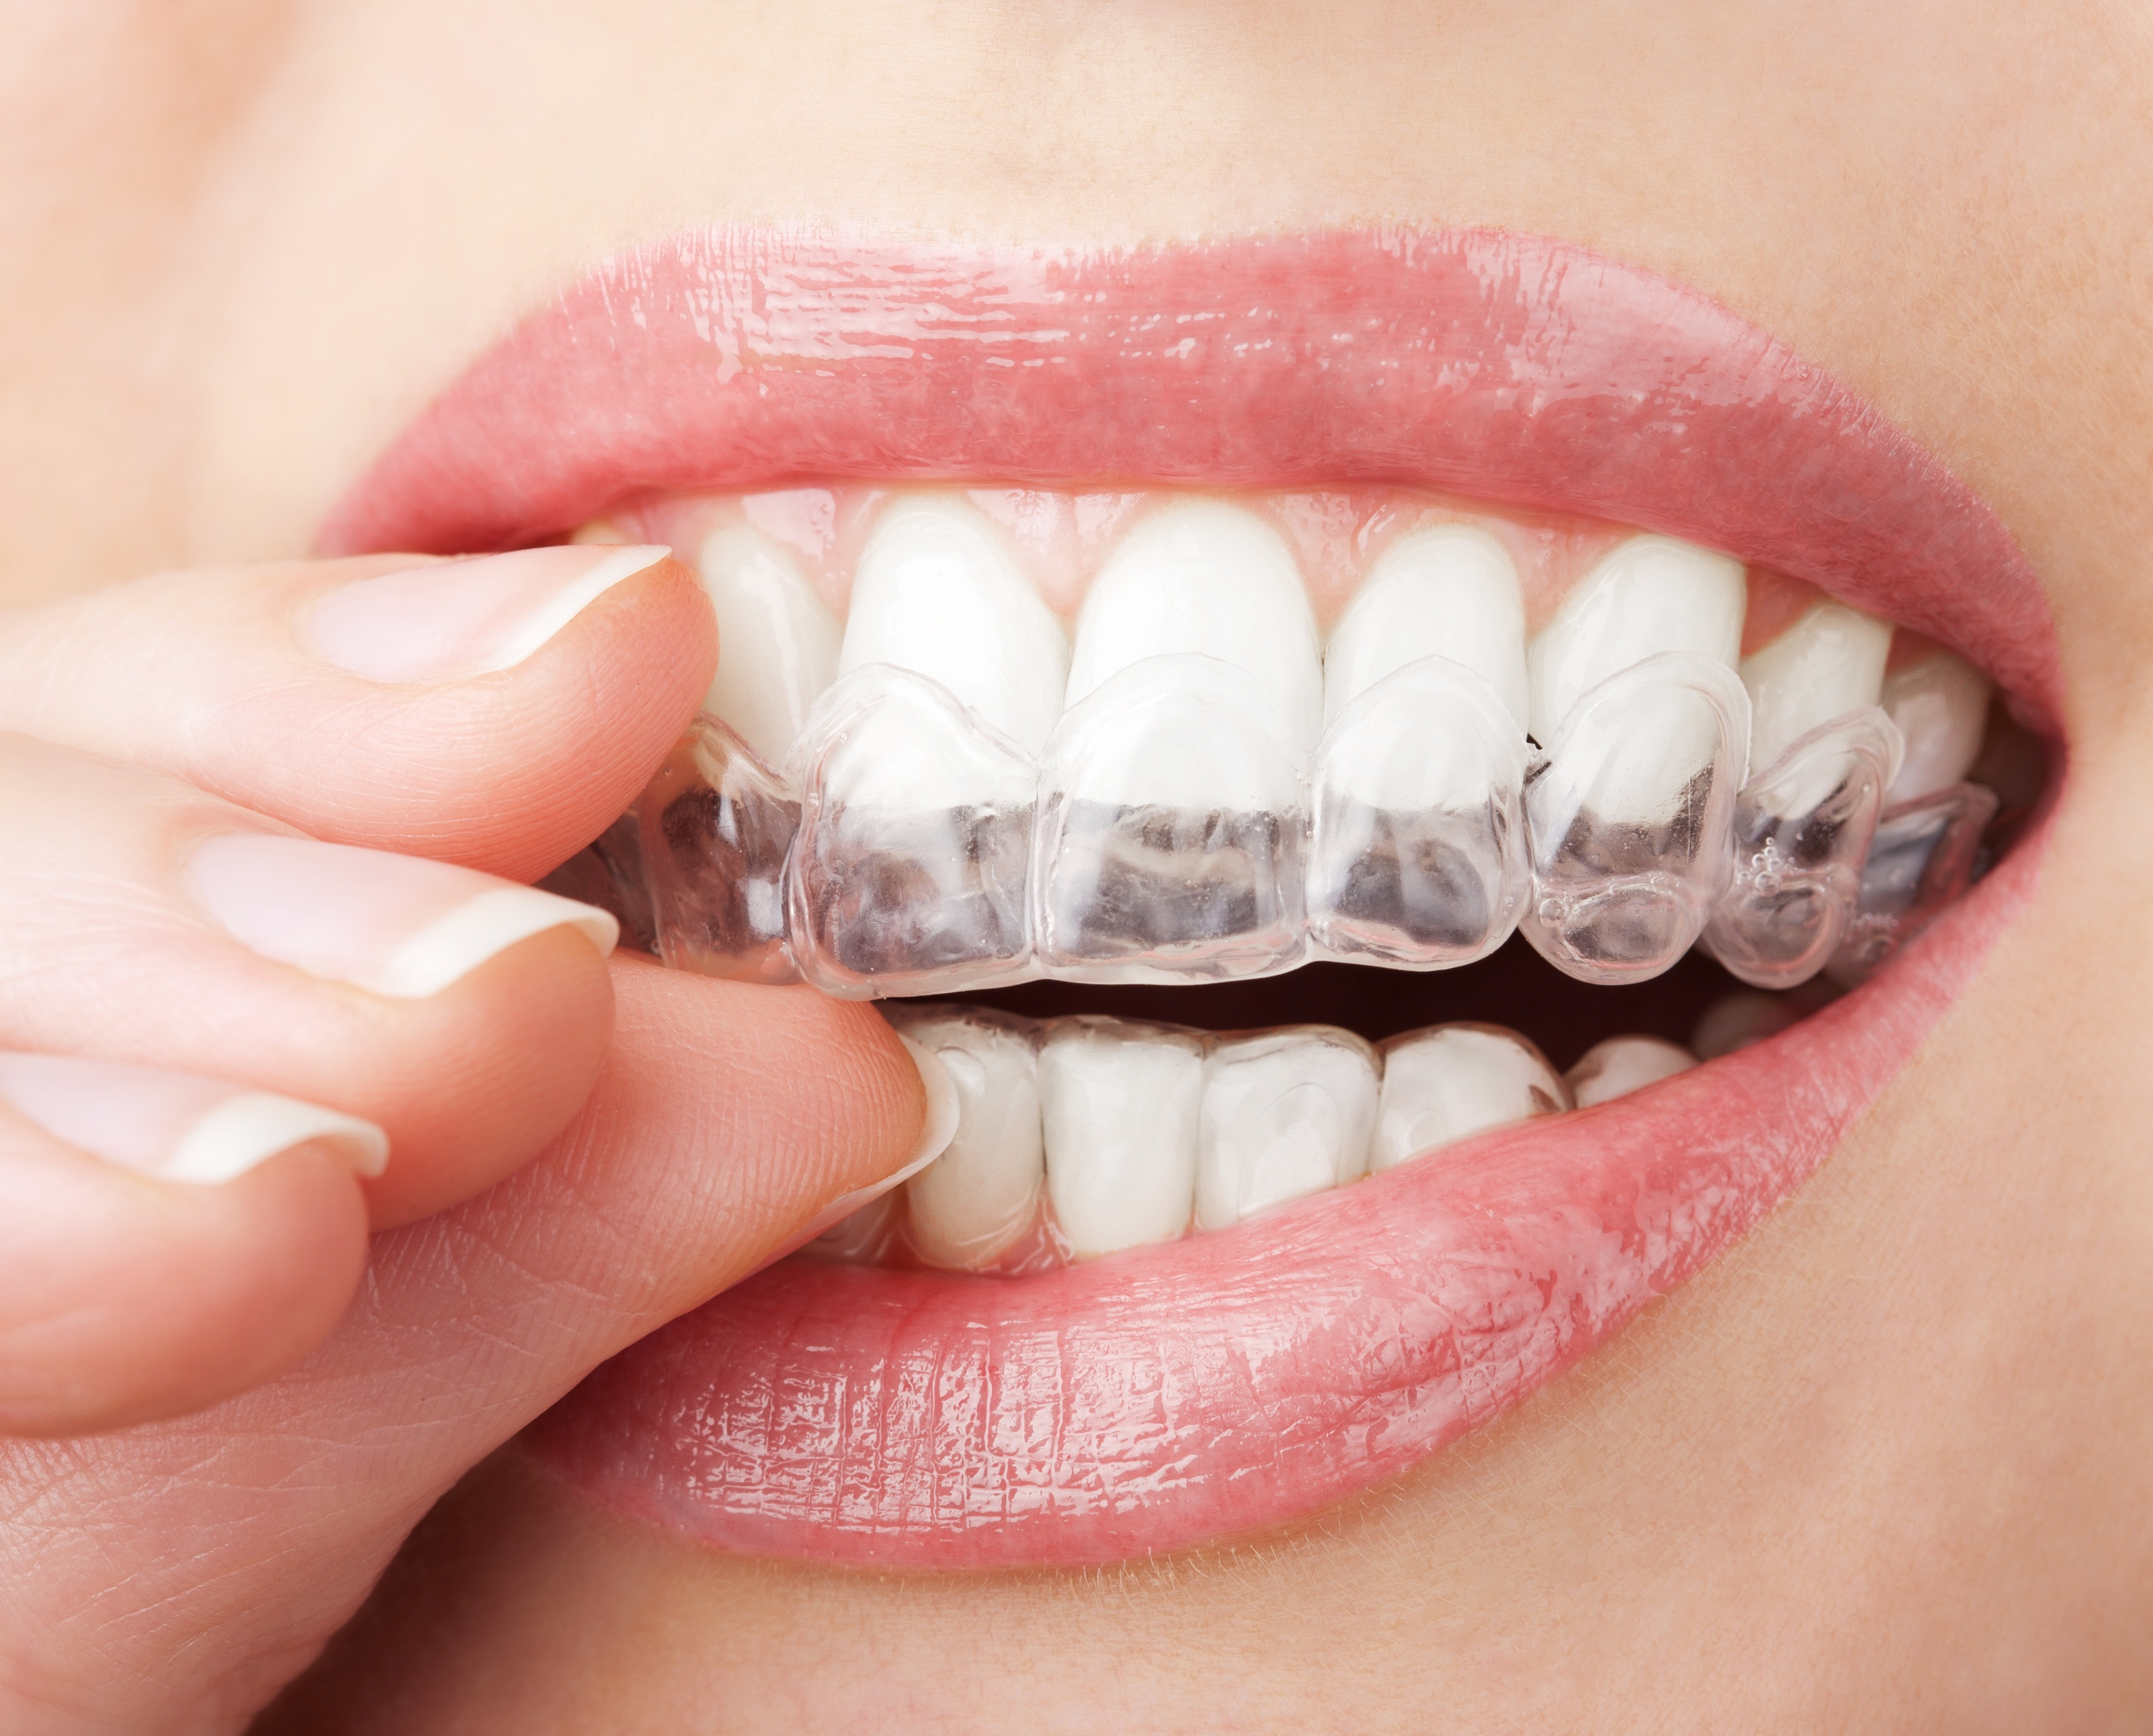 Where can I get Invisalign in Johns Creek?